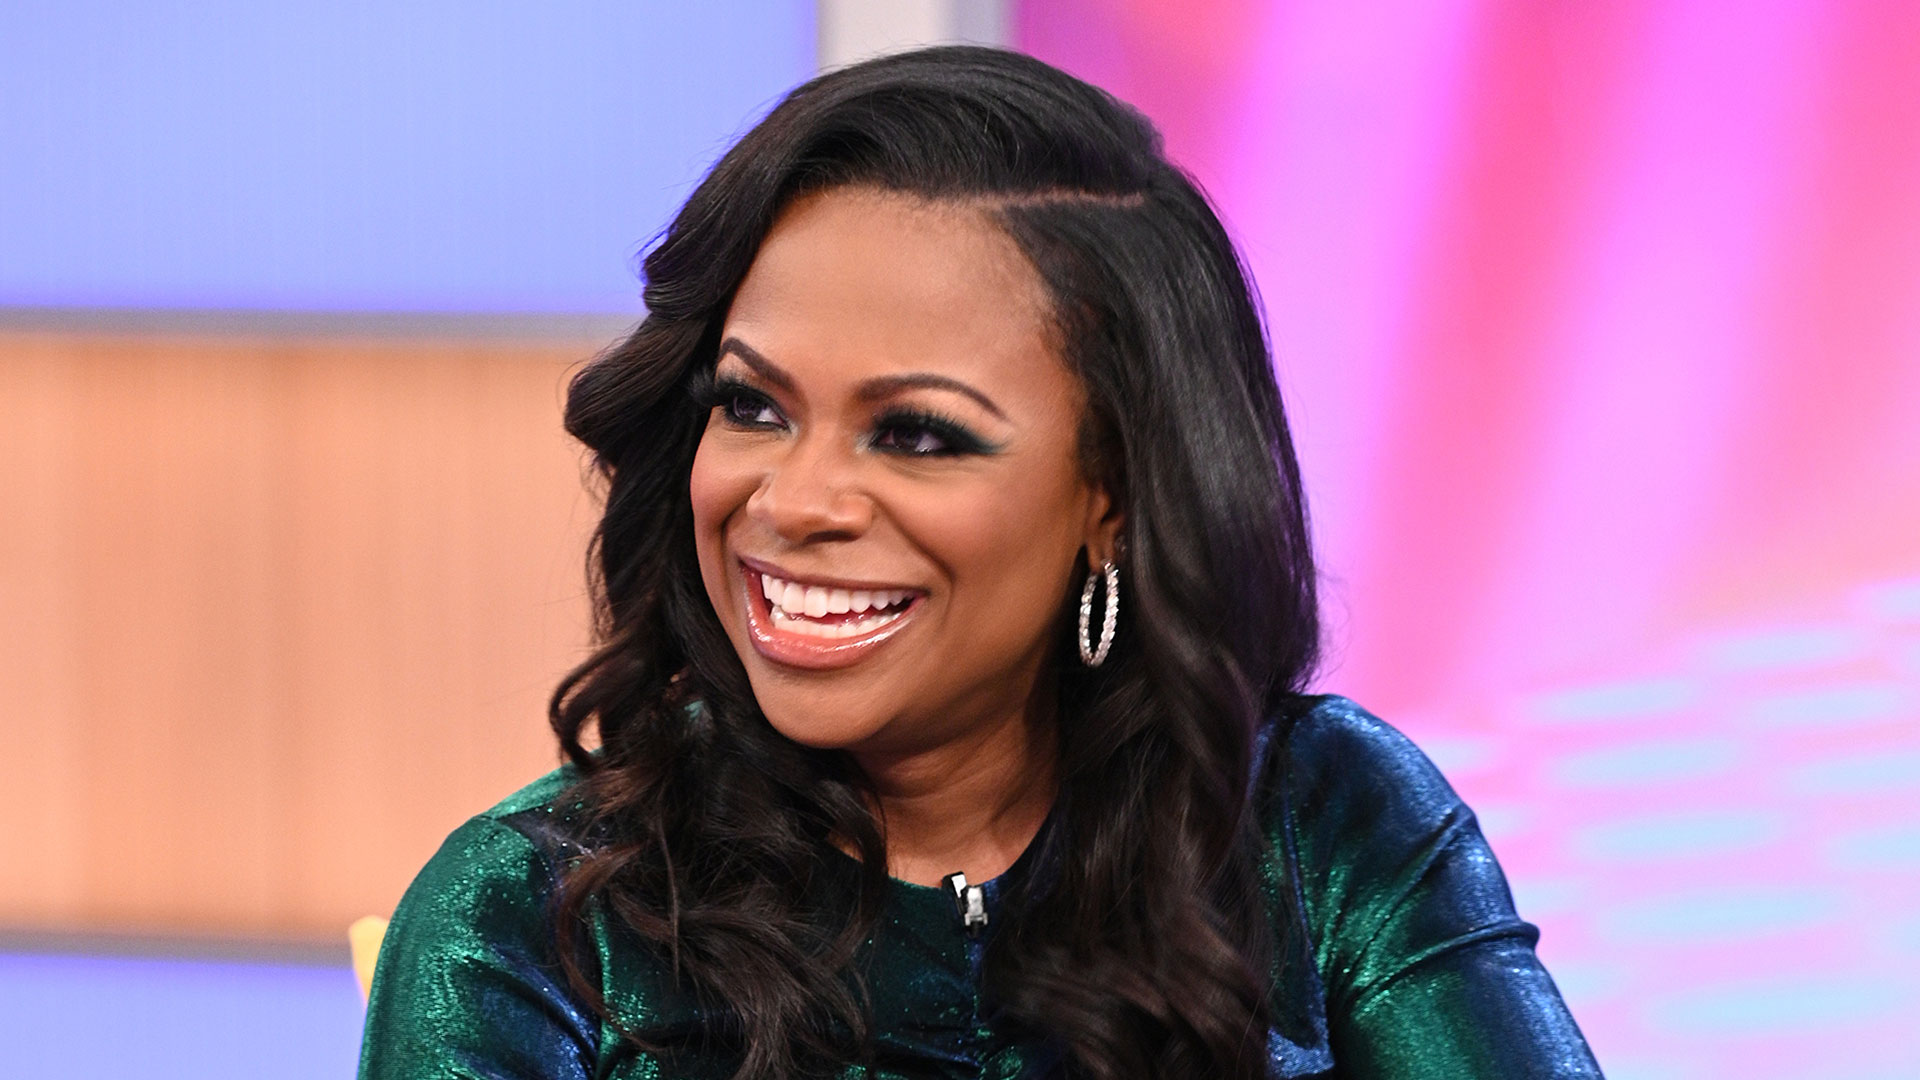 kandi-burruss-celebrates-mlk-day-see-her-post-to-mark-the-event